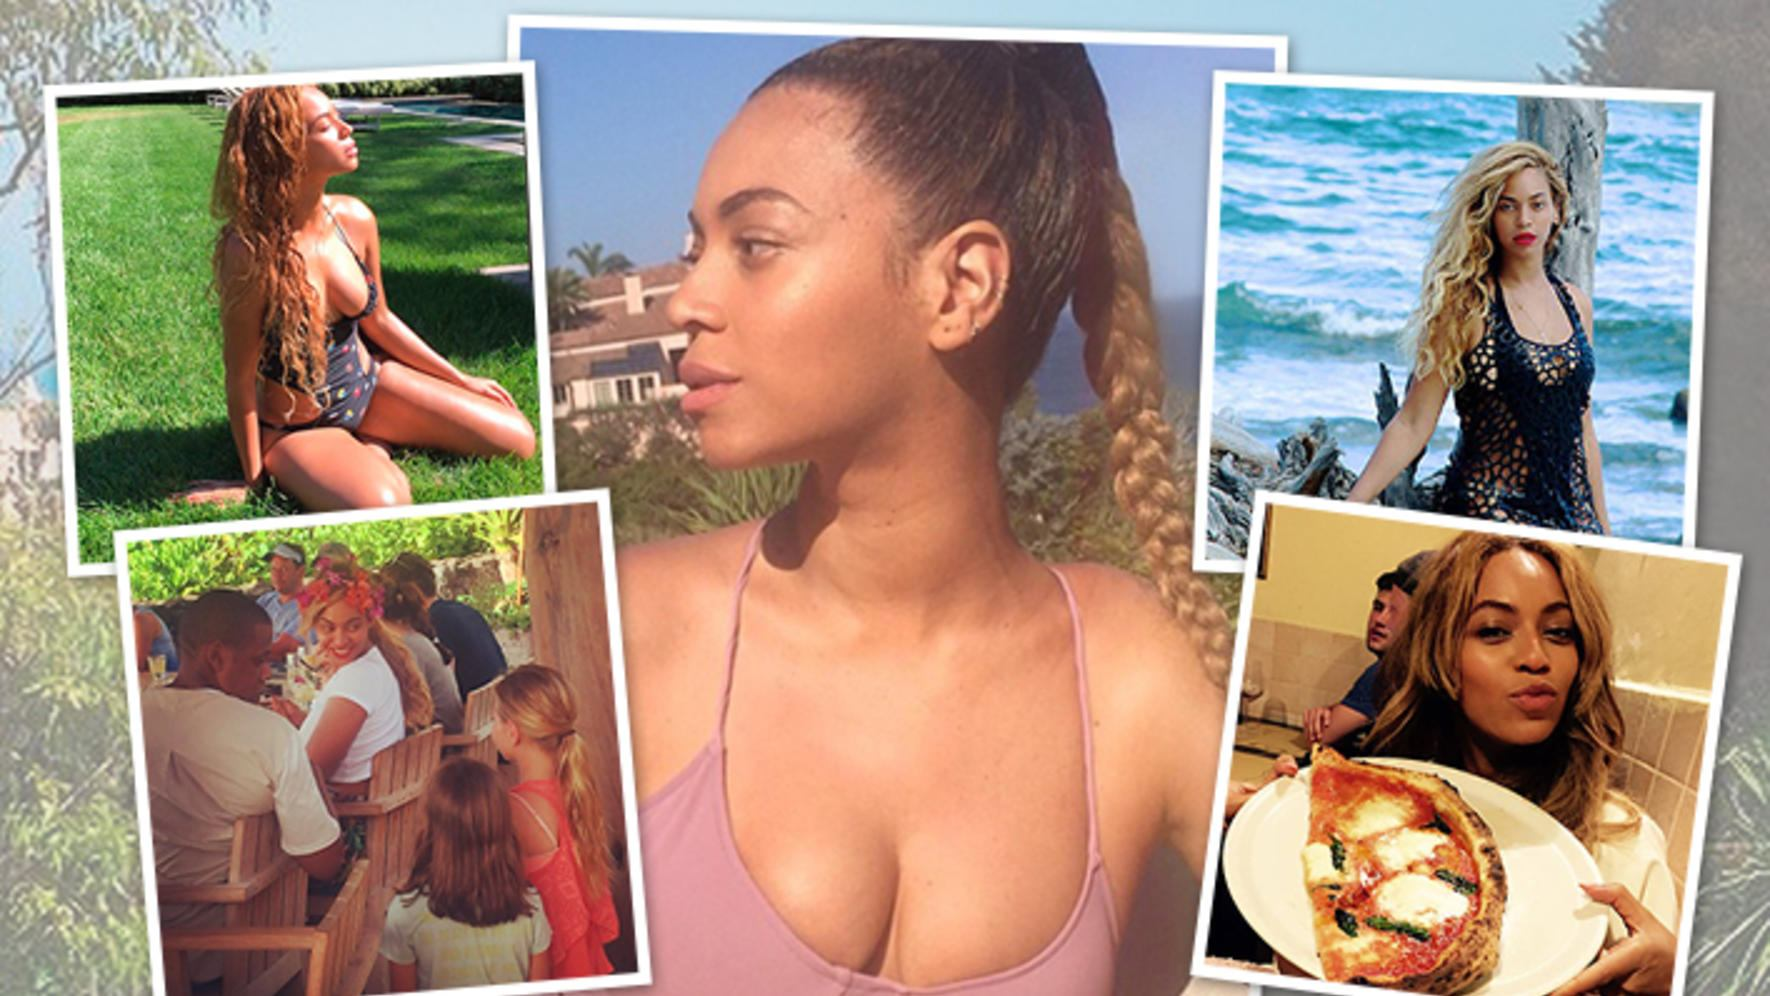 Beyoncé (Single Ladies) Ferien mit Blue Ivy & Jay Z Hawaii, Haiti, Rom